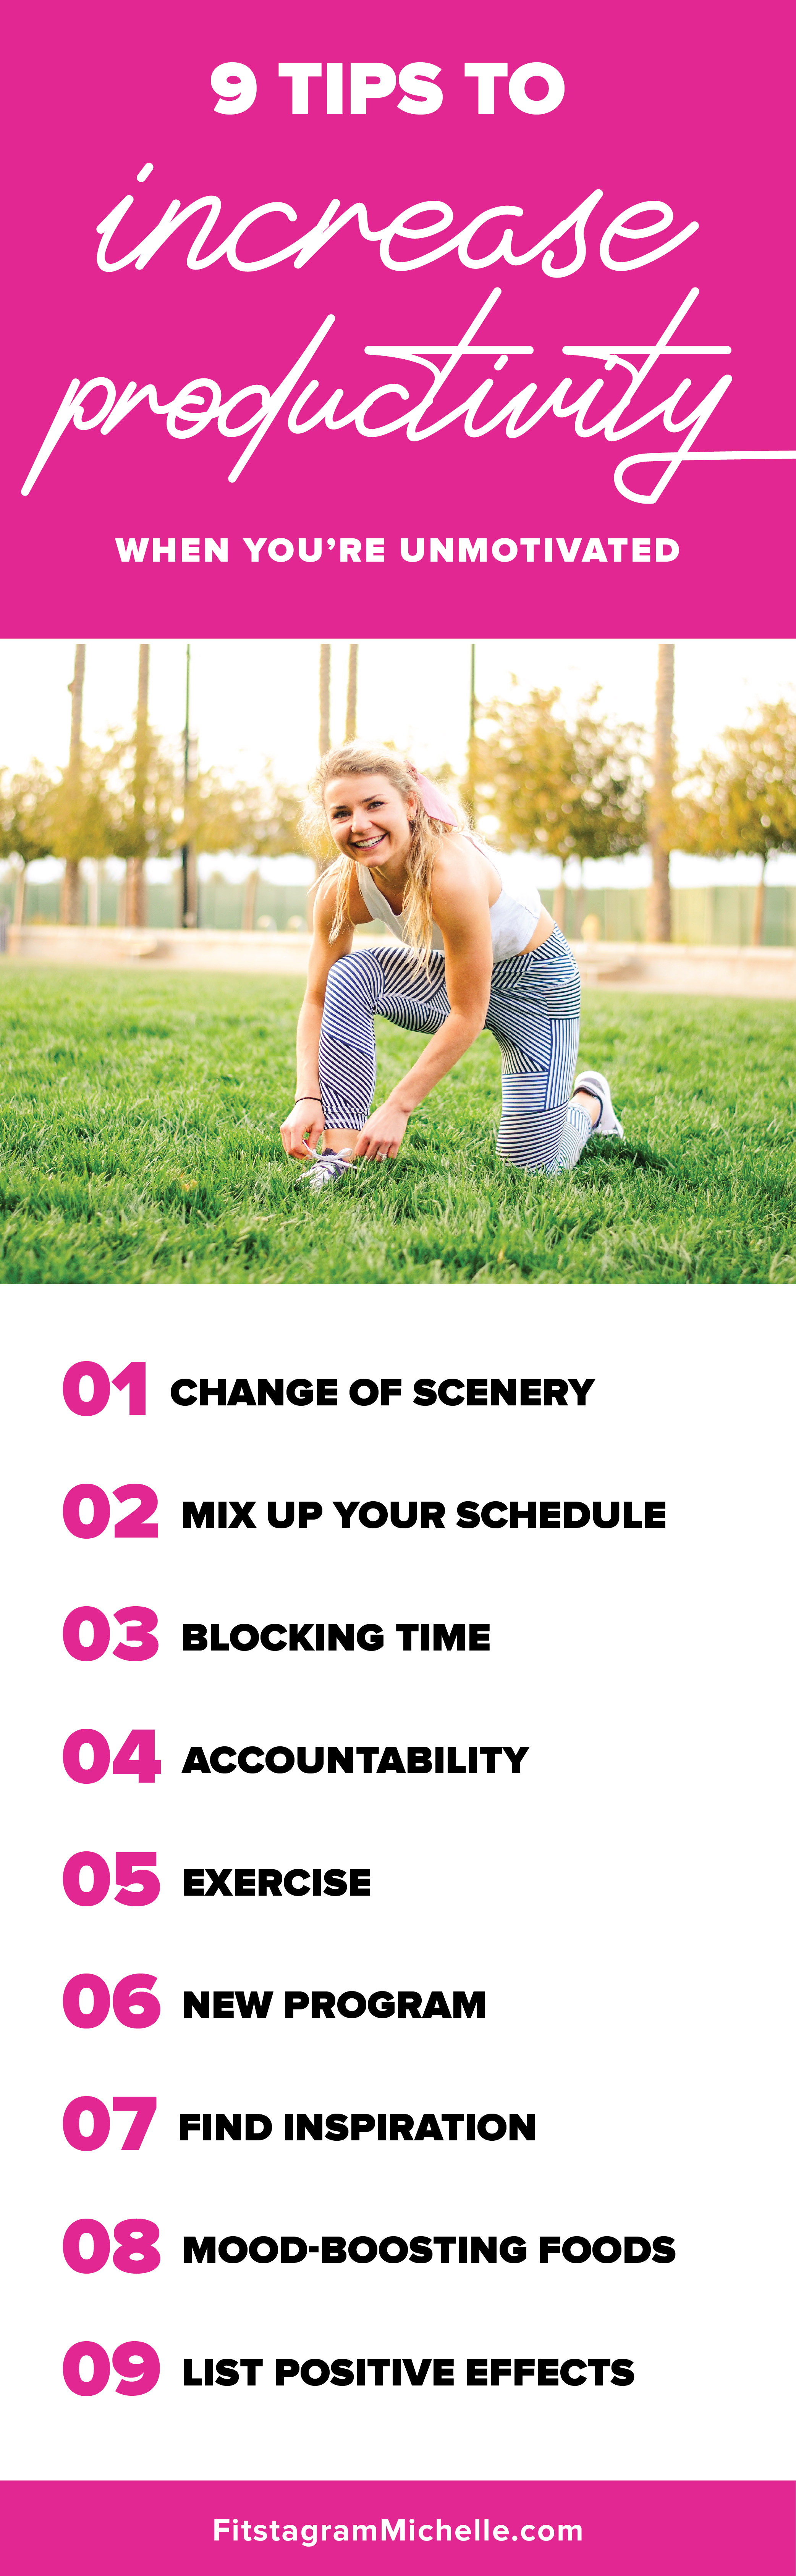 How to increase productivity when you're in a rut! 9 tips from Fitstagram Michelle